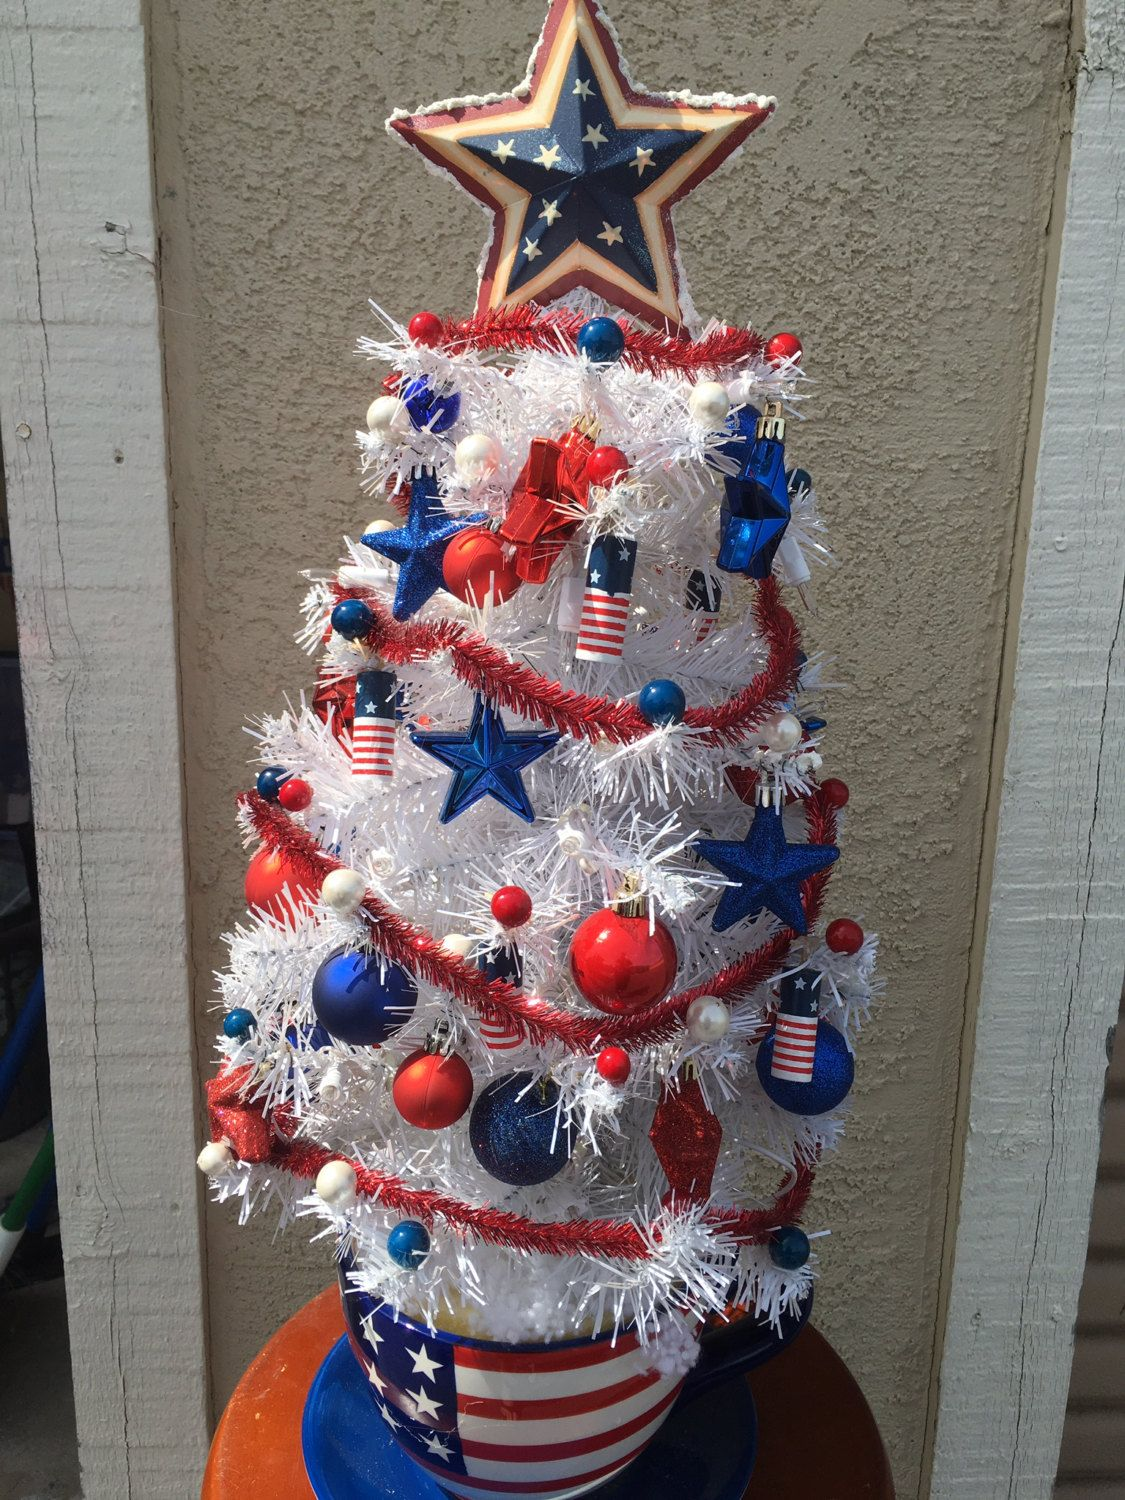 Americana Patriotic 4th Of July American Flag Themed Holiday Christmas Tree Holiday Tre Patriotic Christmas Holiday Christmas Tree Patriotic Decorations